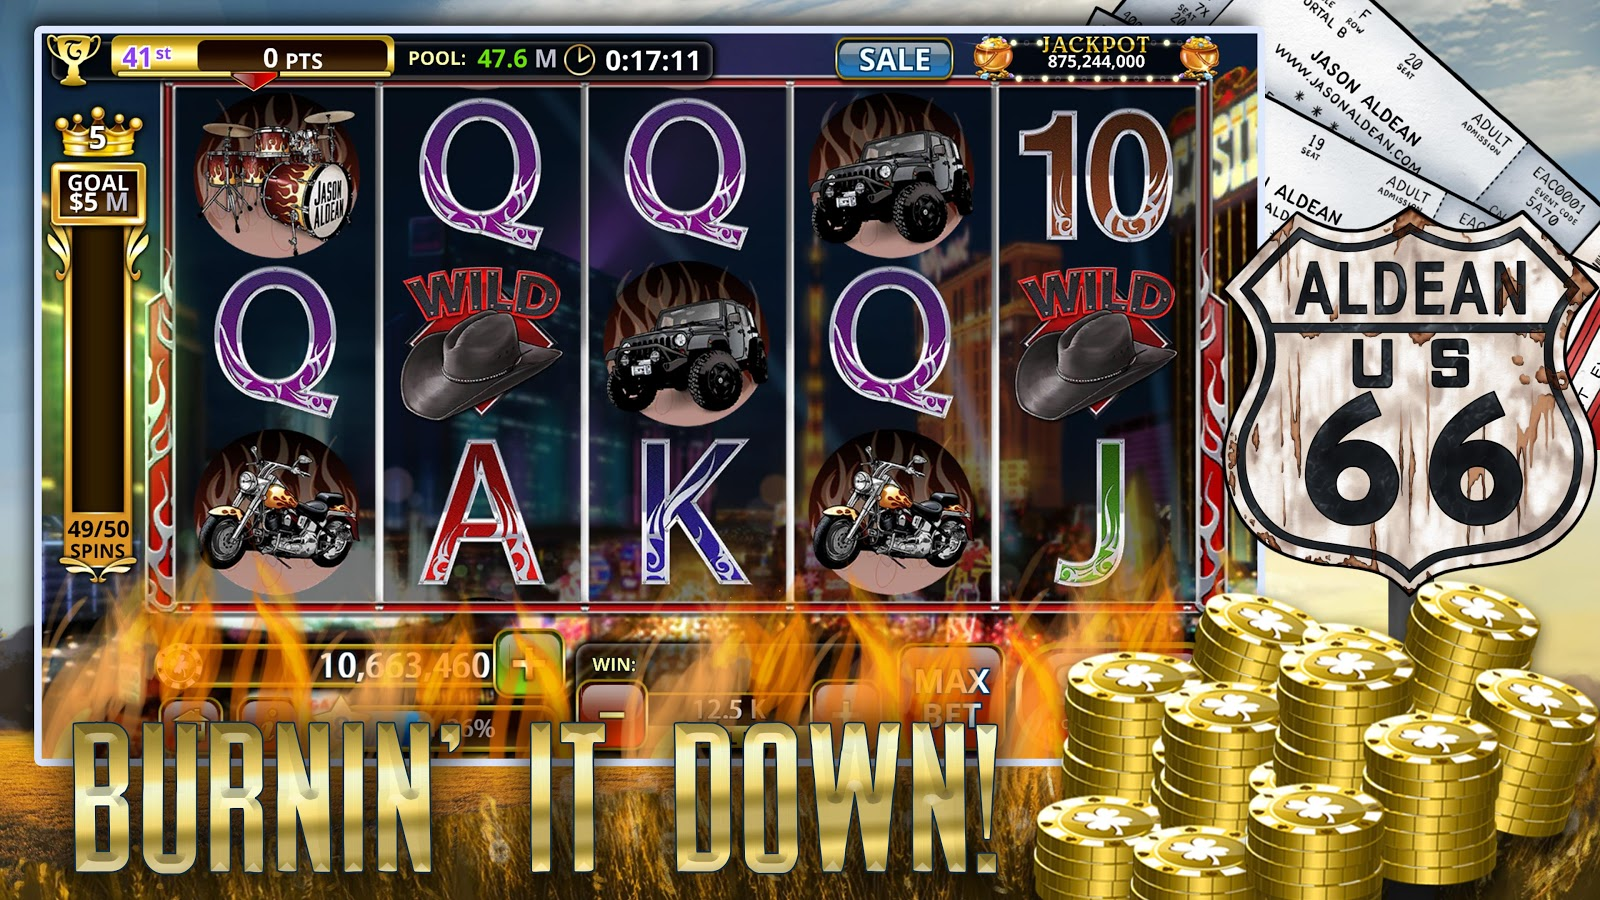 Music Country Slot Machine - Play Penny Slots Online